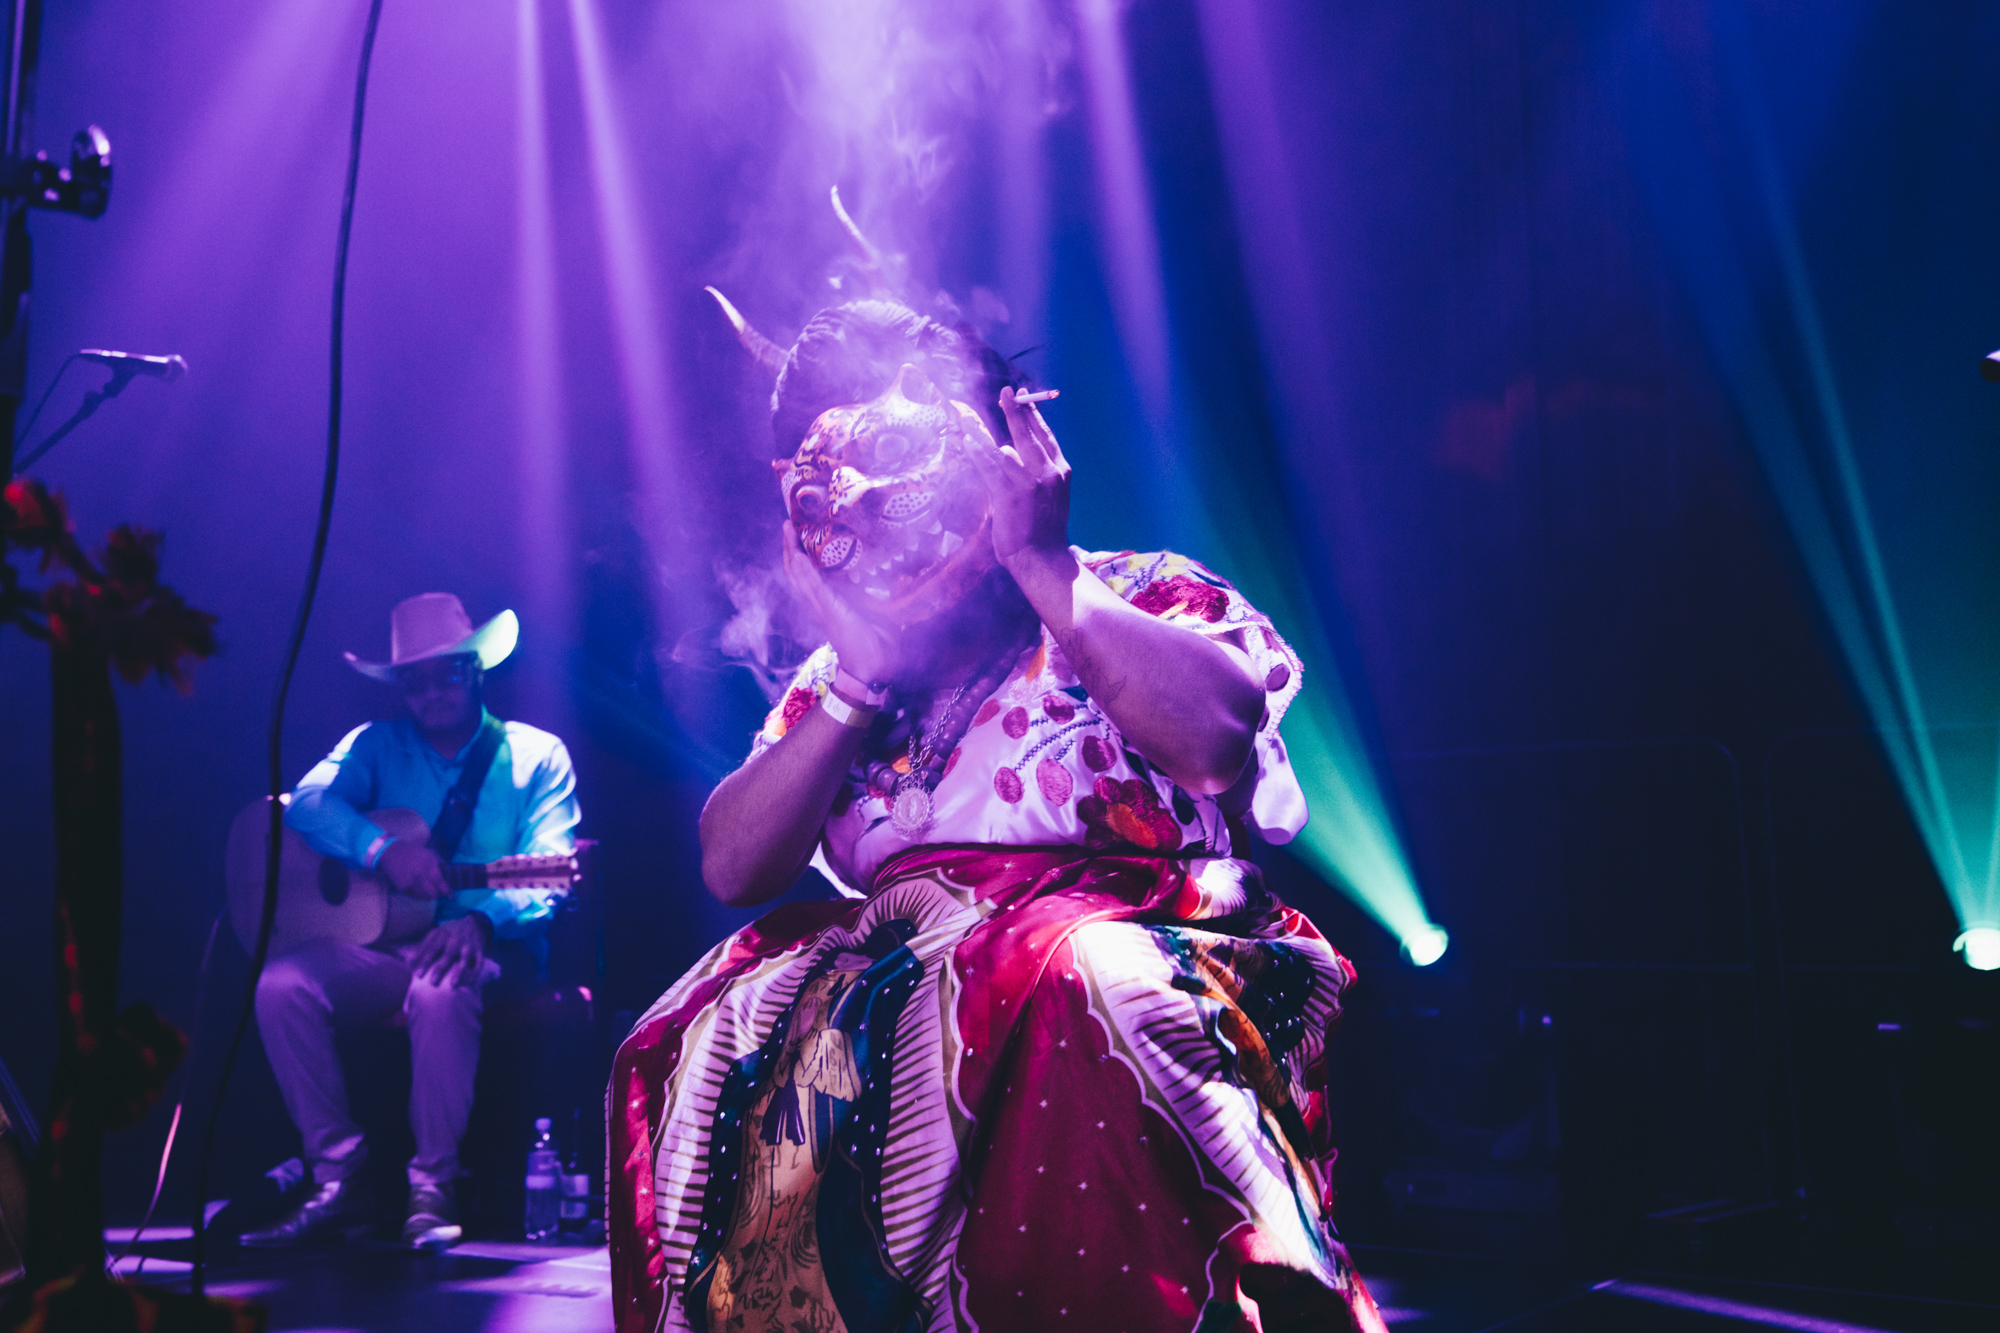 Photo series: the transformative experience of La Bruja de Texcoco at LGW19, captured by Melanie Marsman